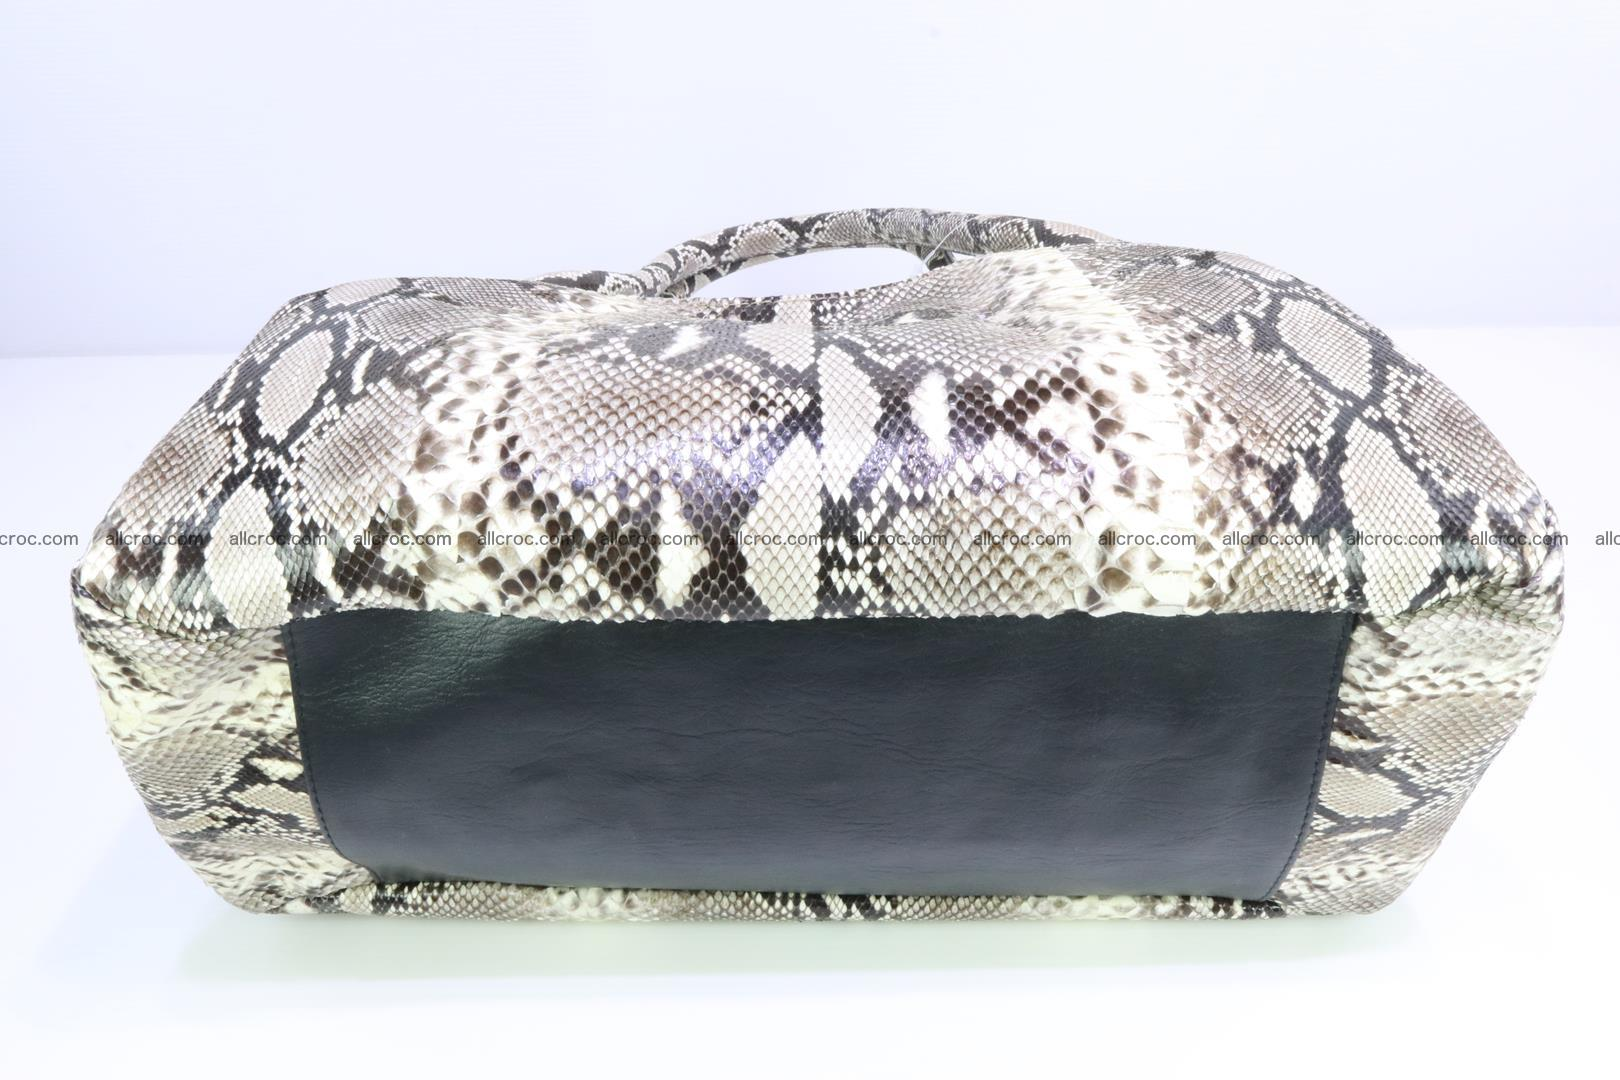 Python skin handbag for lady from genuine Python skin 196 Foto 5